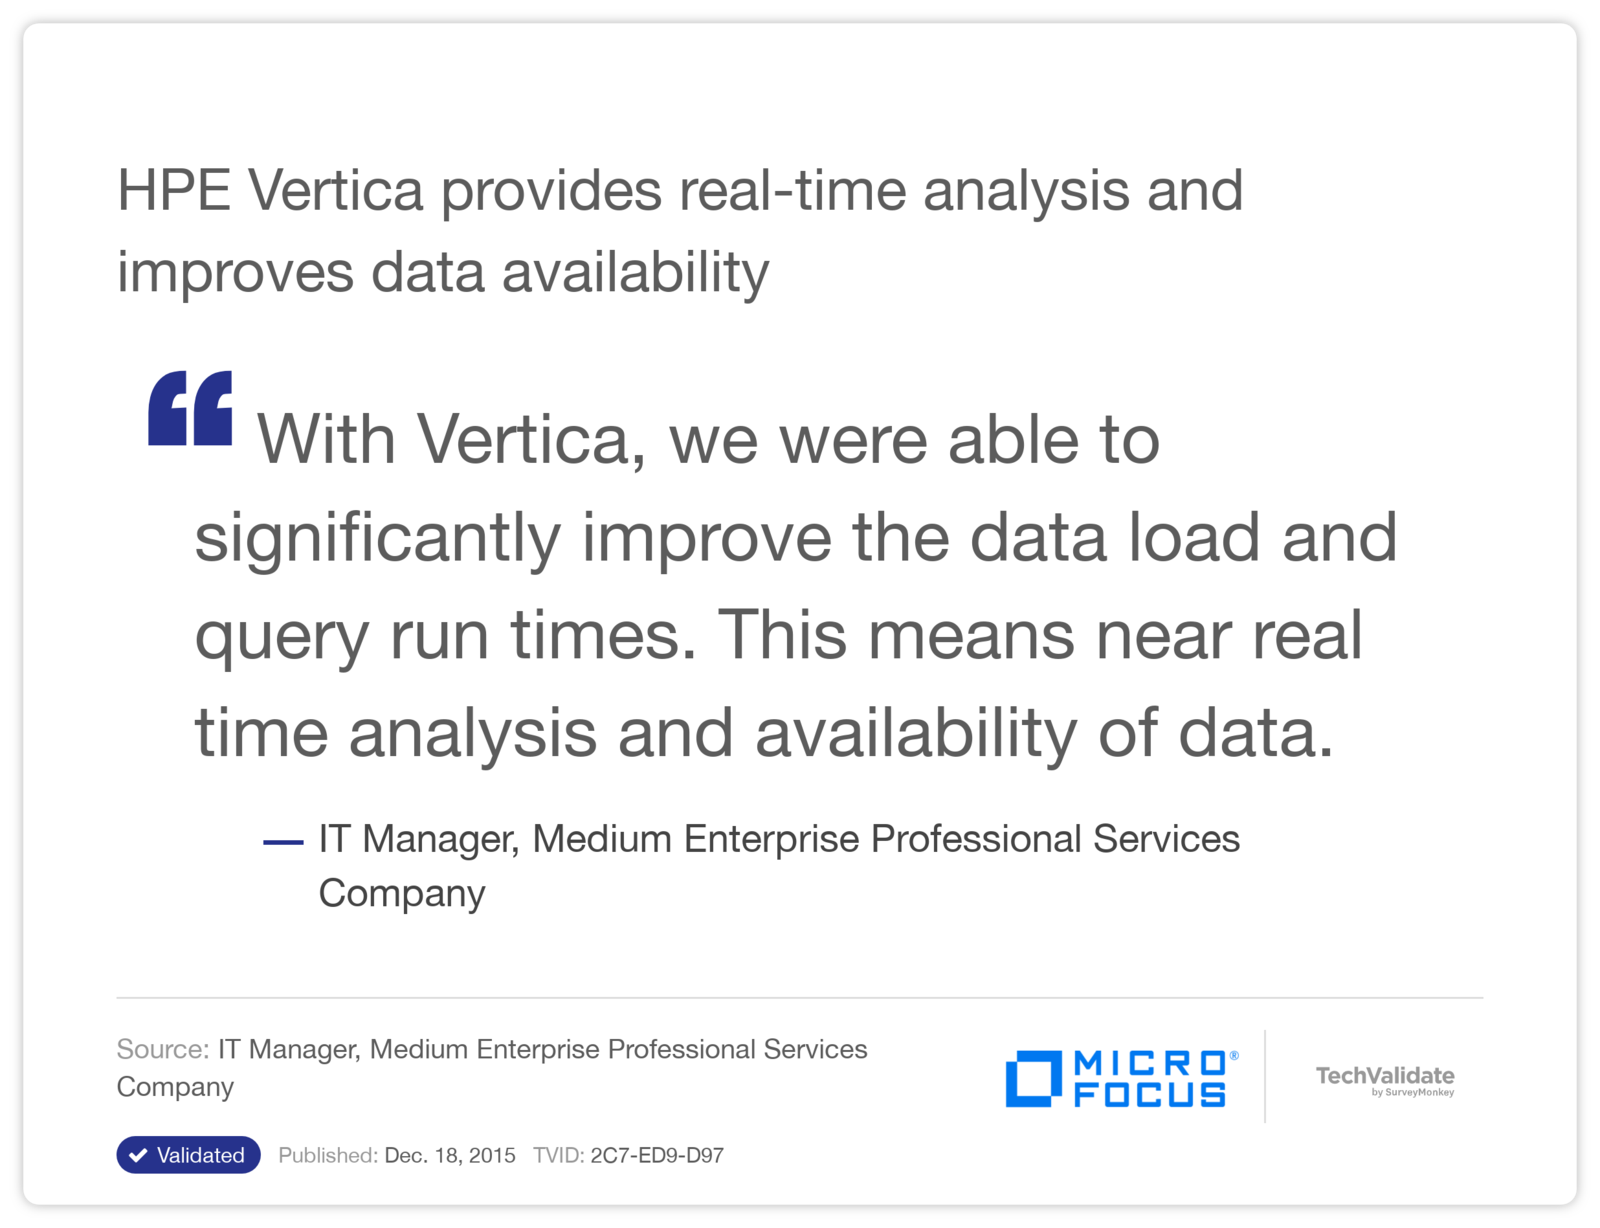 HPE Vertica provides real-time analysis and improves data availability